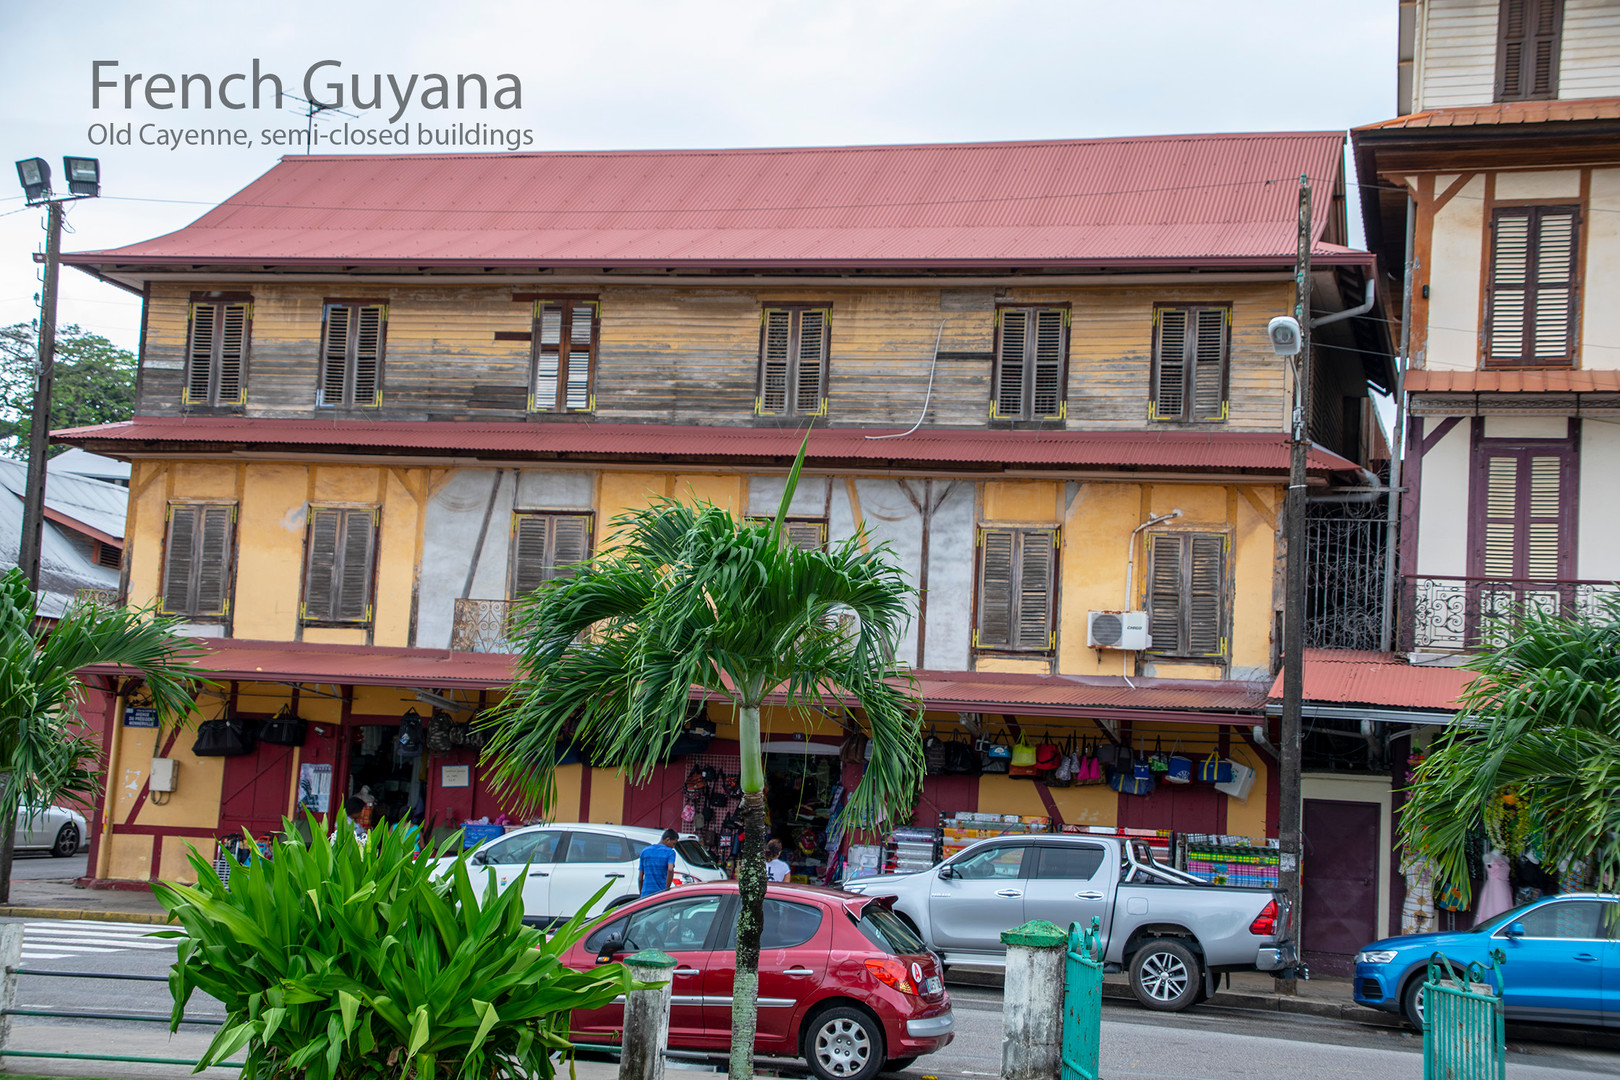 2019-05-16 French Guyana POW (38) 452A68